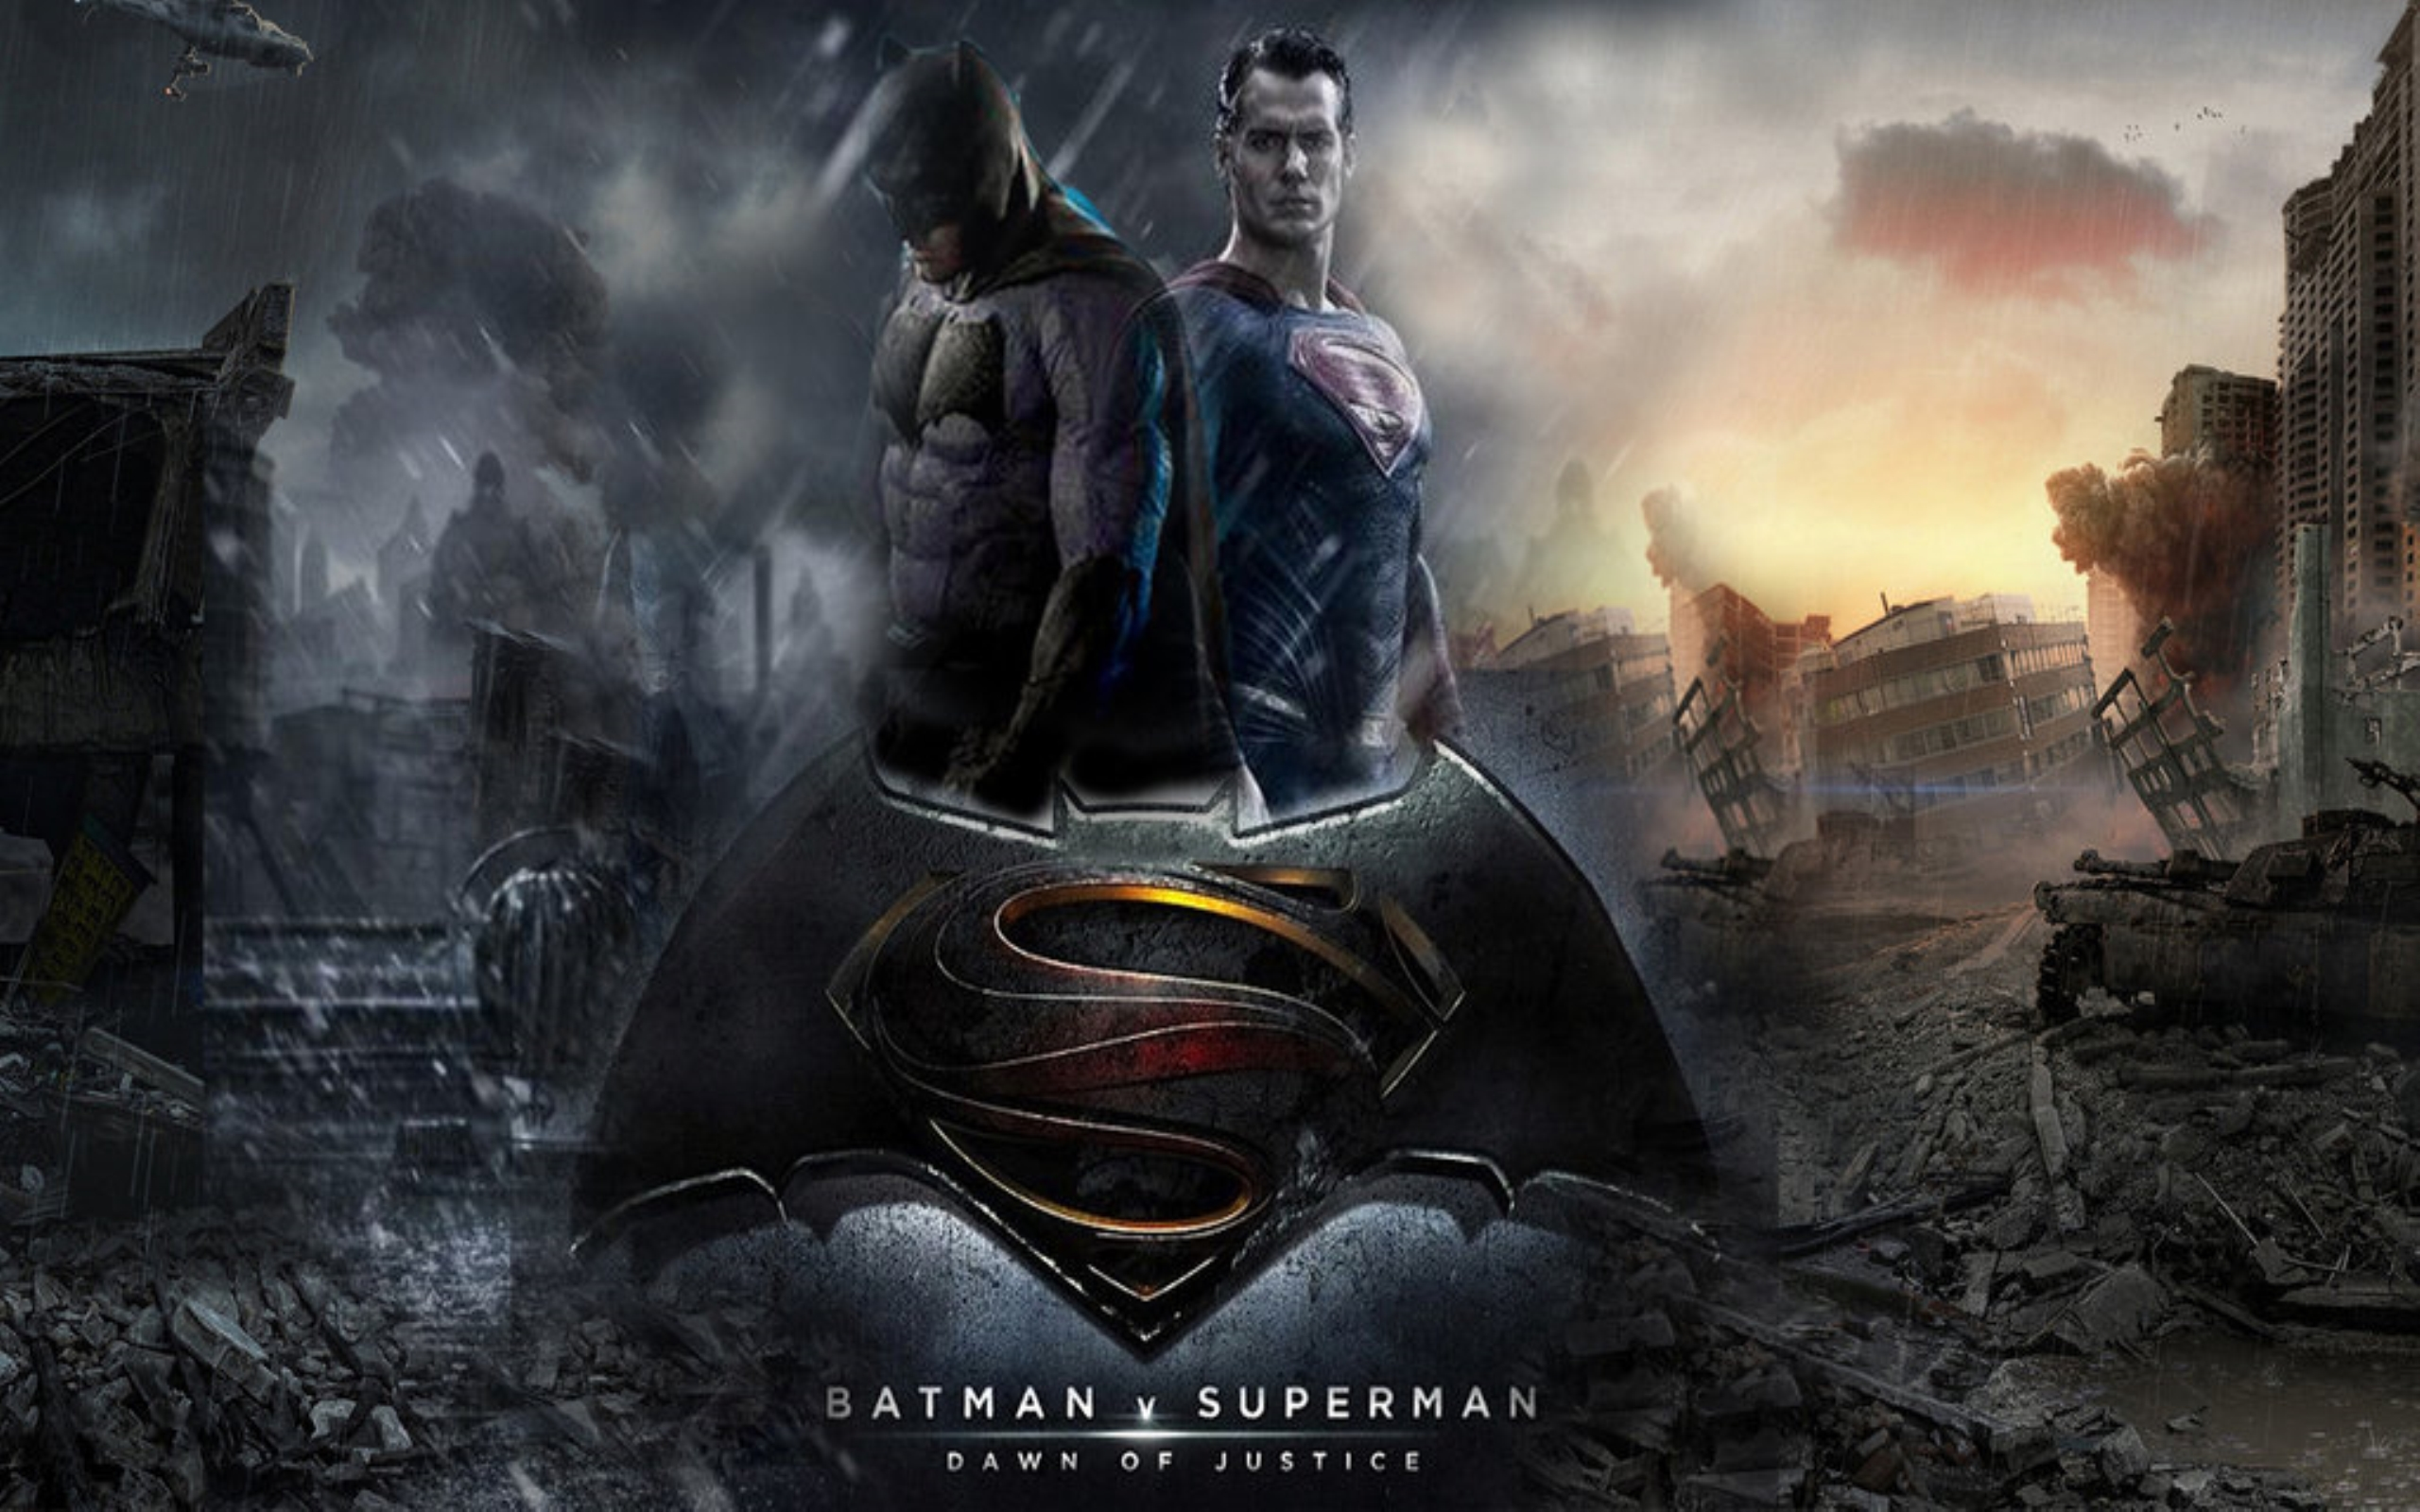 Batman Vs Superman Wallpaper Hd 603954 Batman Vs Superman